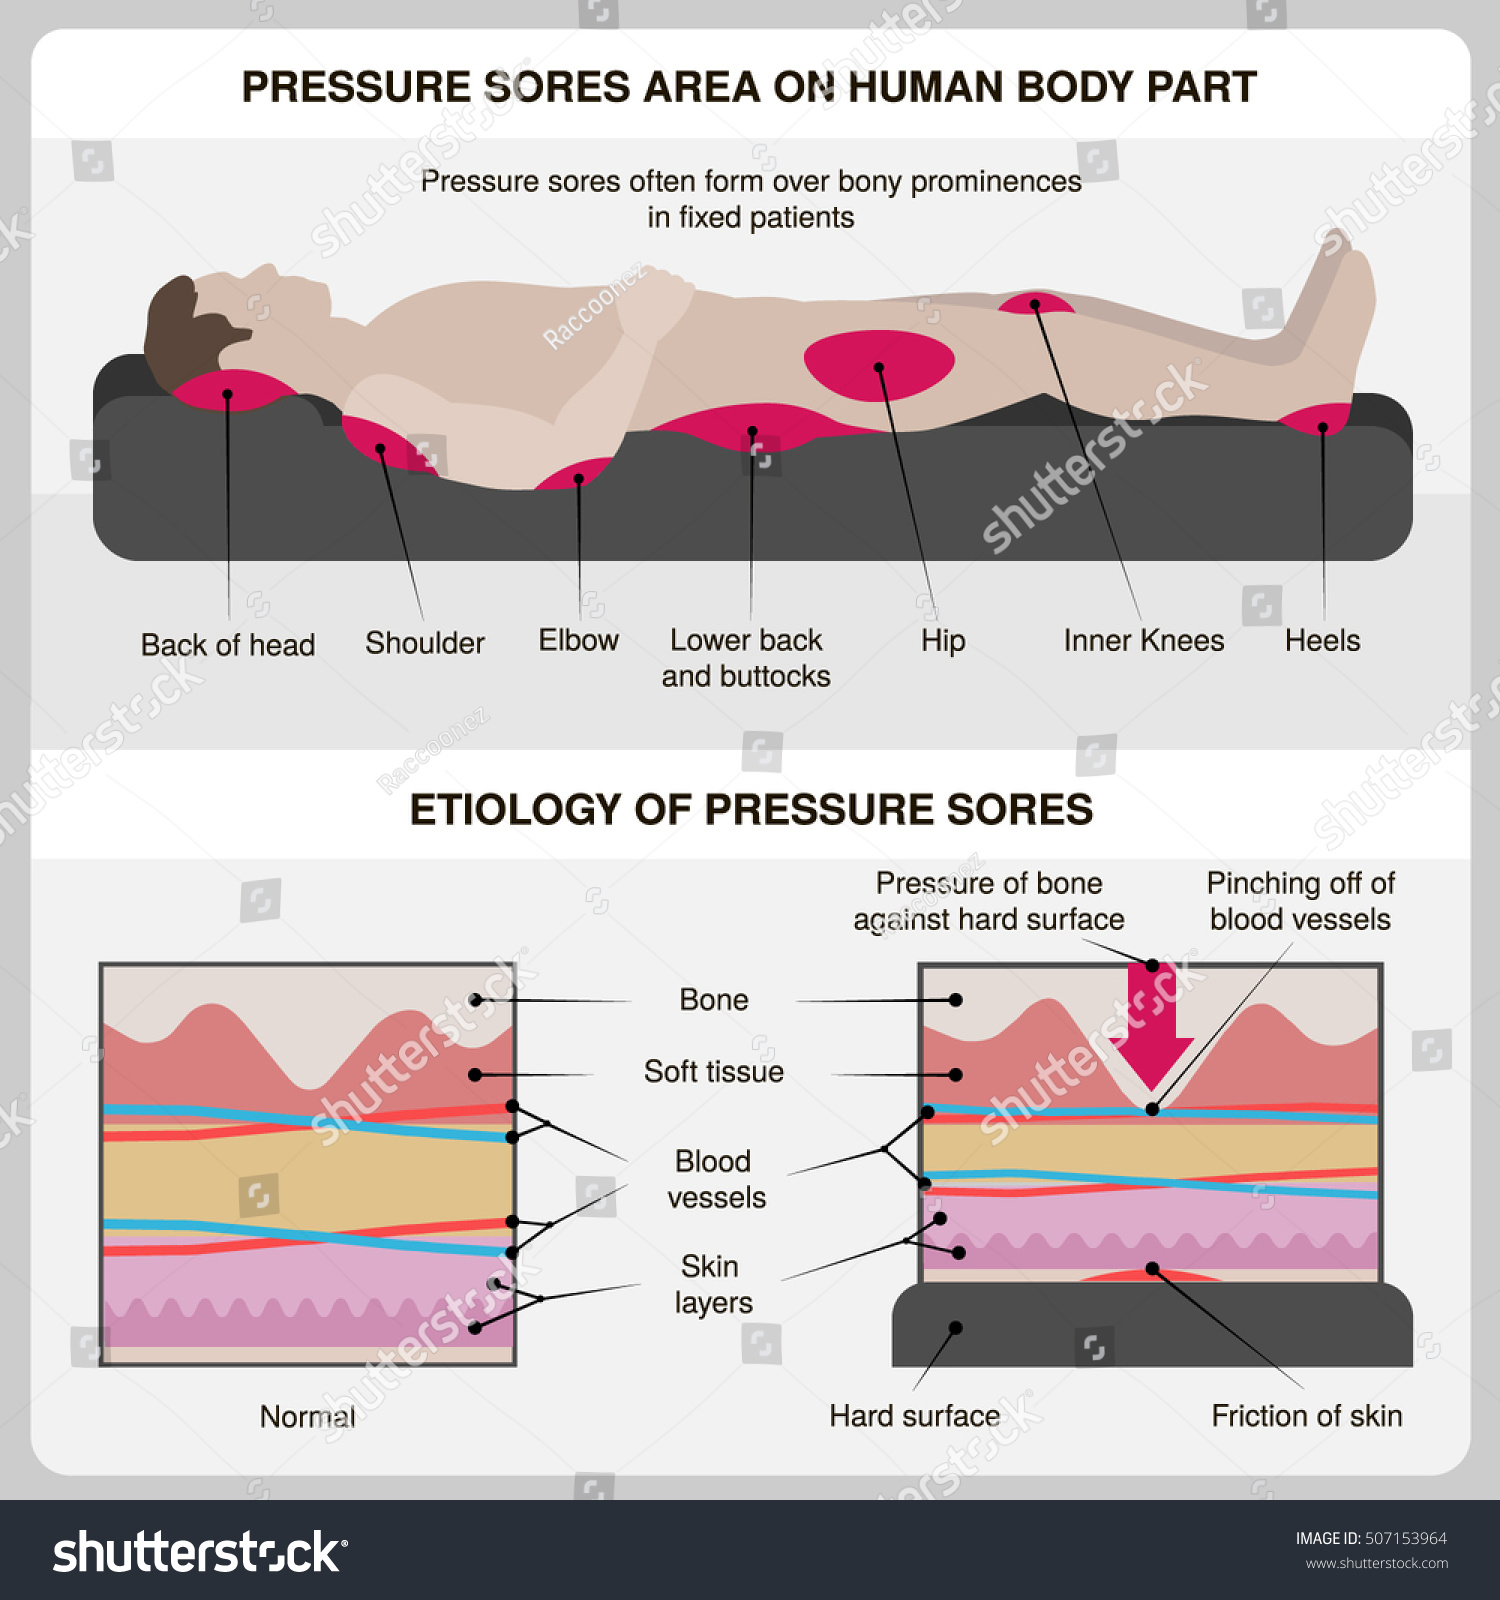 hight resolution of man with pressure sores pressure sores area on human body part and etiology of pressure